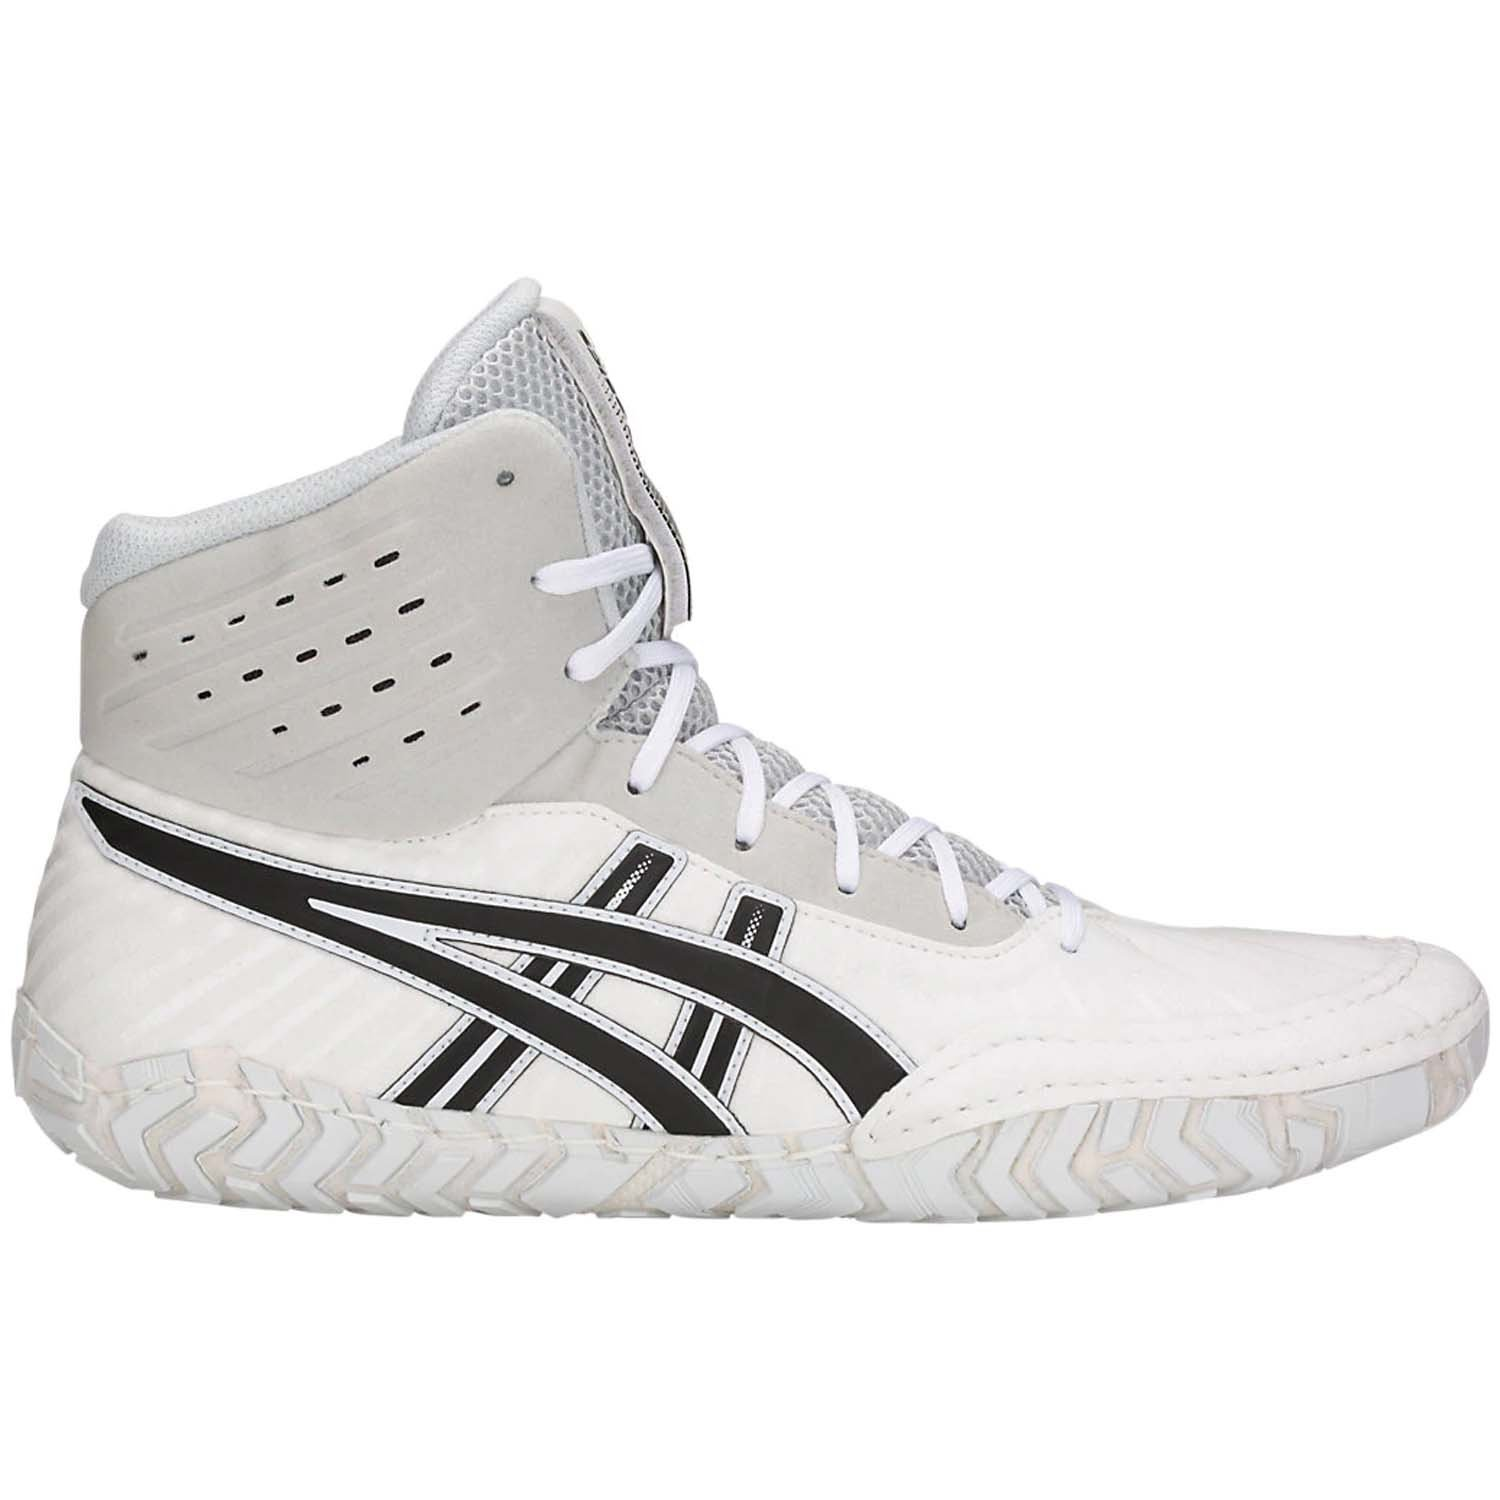 ASICS Aggressor 4 White/Black Men's Wrestling Shoes